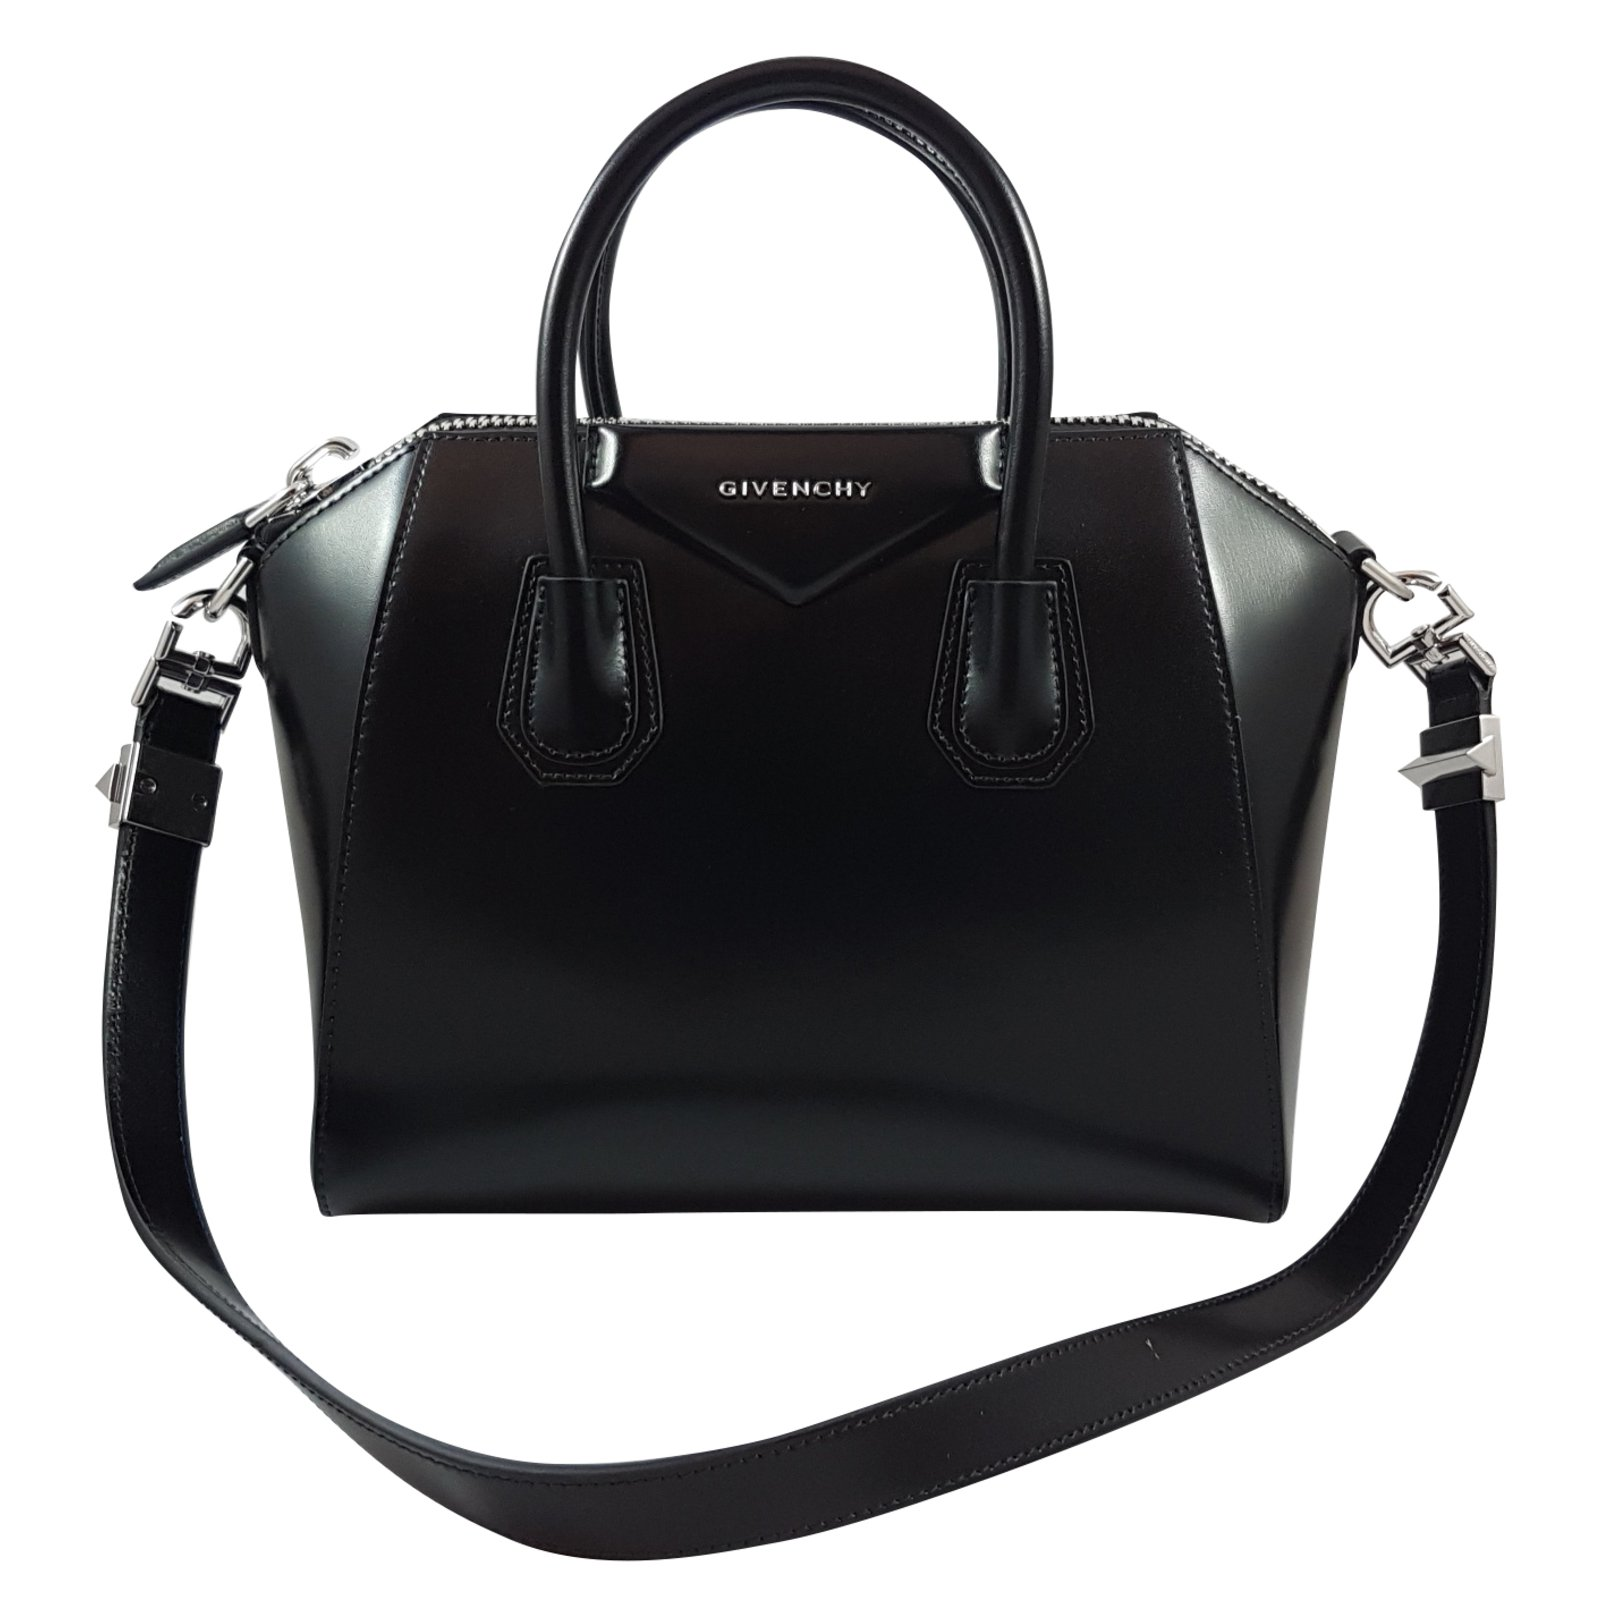 Givenchy Givenchy Antigona Small Black Leather Handbags Leather Black  ref.69251 3537af8d698d4